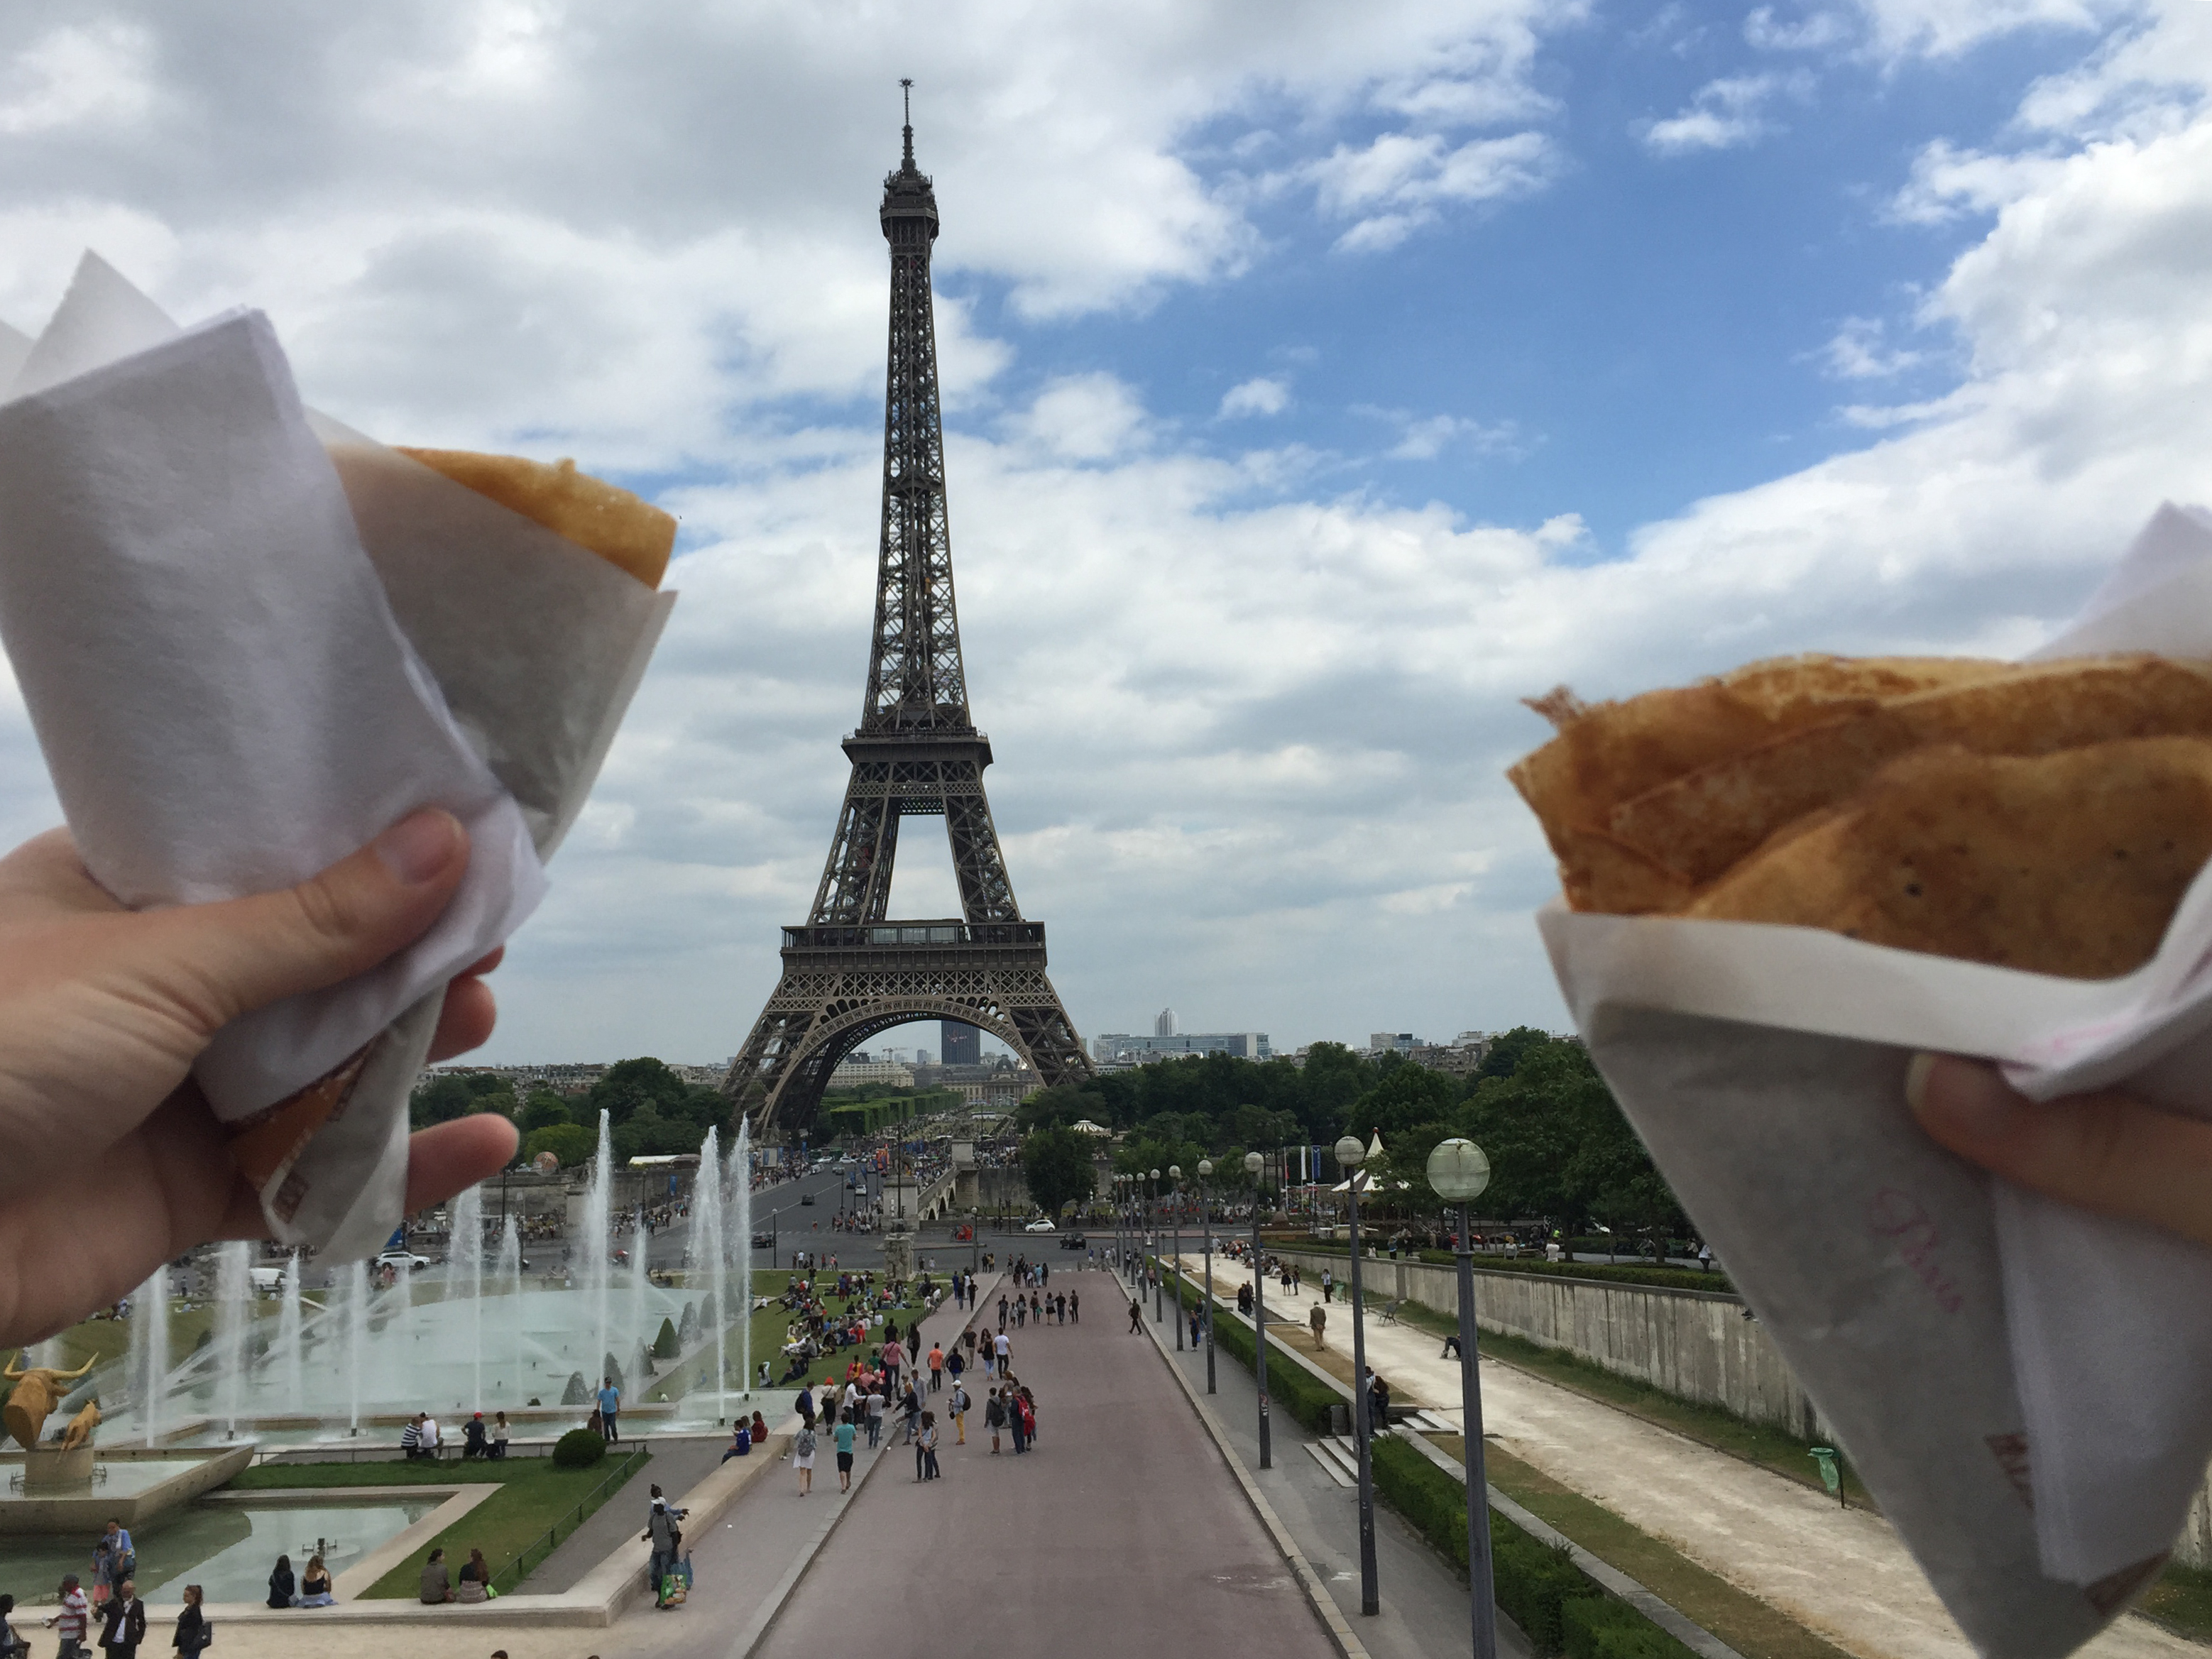 Two crepes held up in the foreground with the Eiffel Tower in the background.